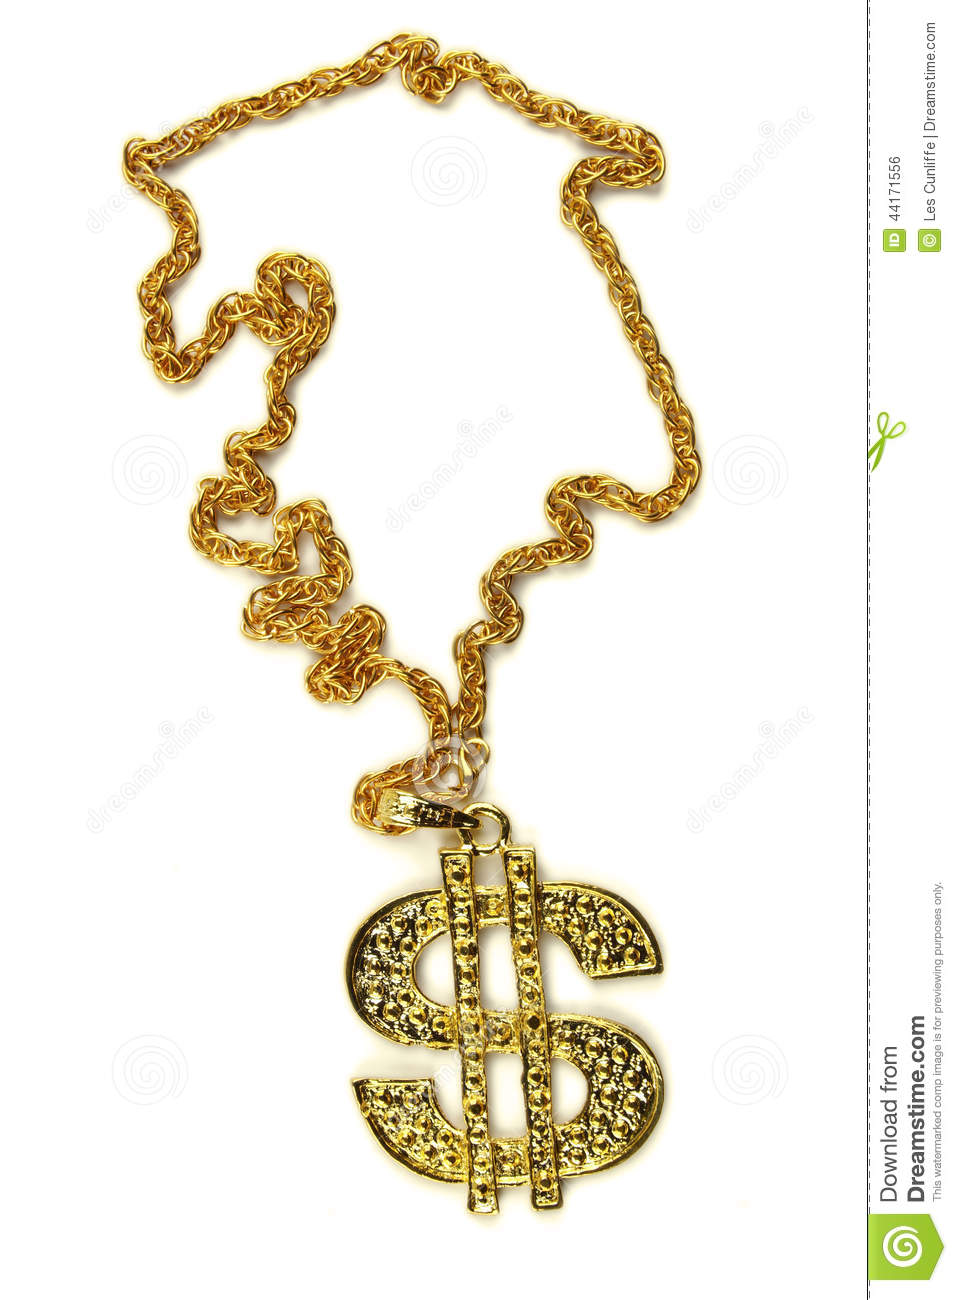 Dollar necklace stock photo image 44171556 for Dollar jewelry and more